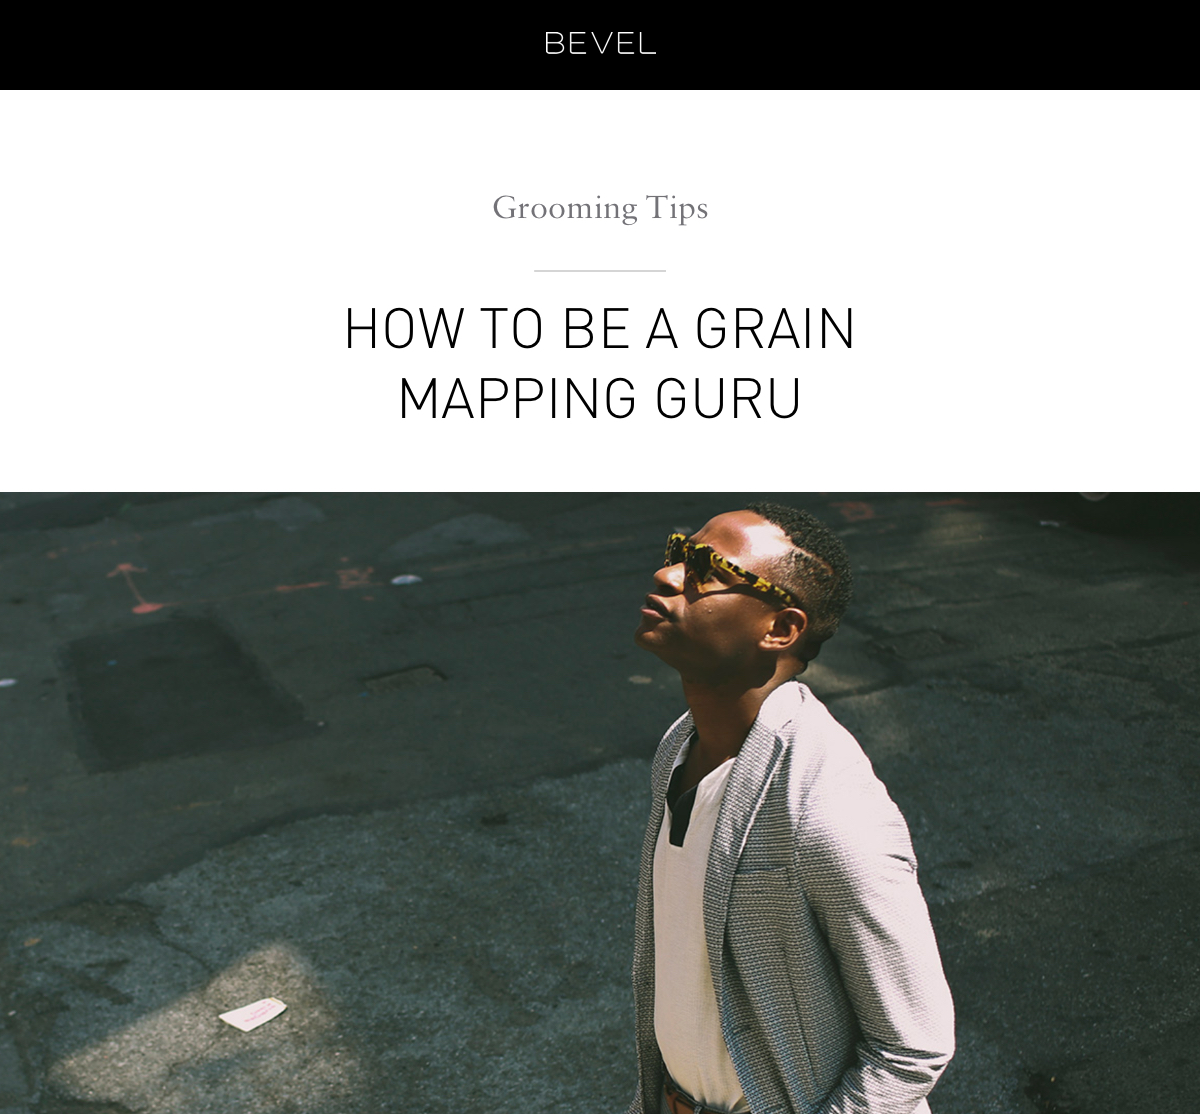 How To Be A Grain Mapping Guru